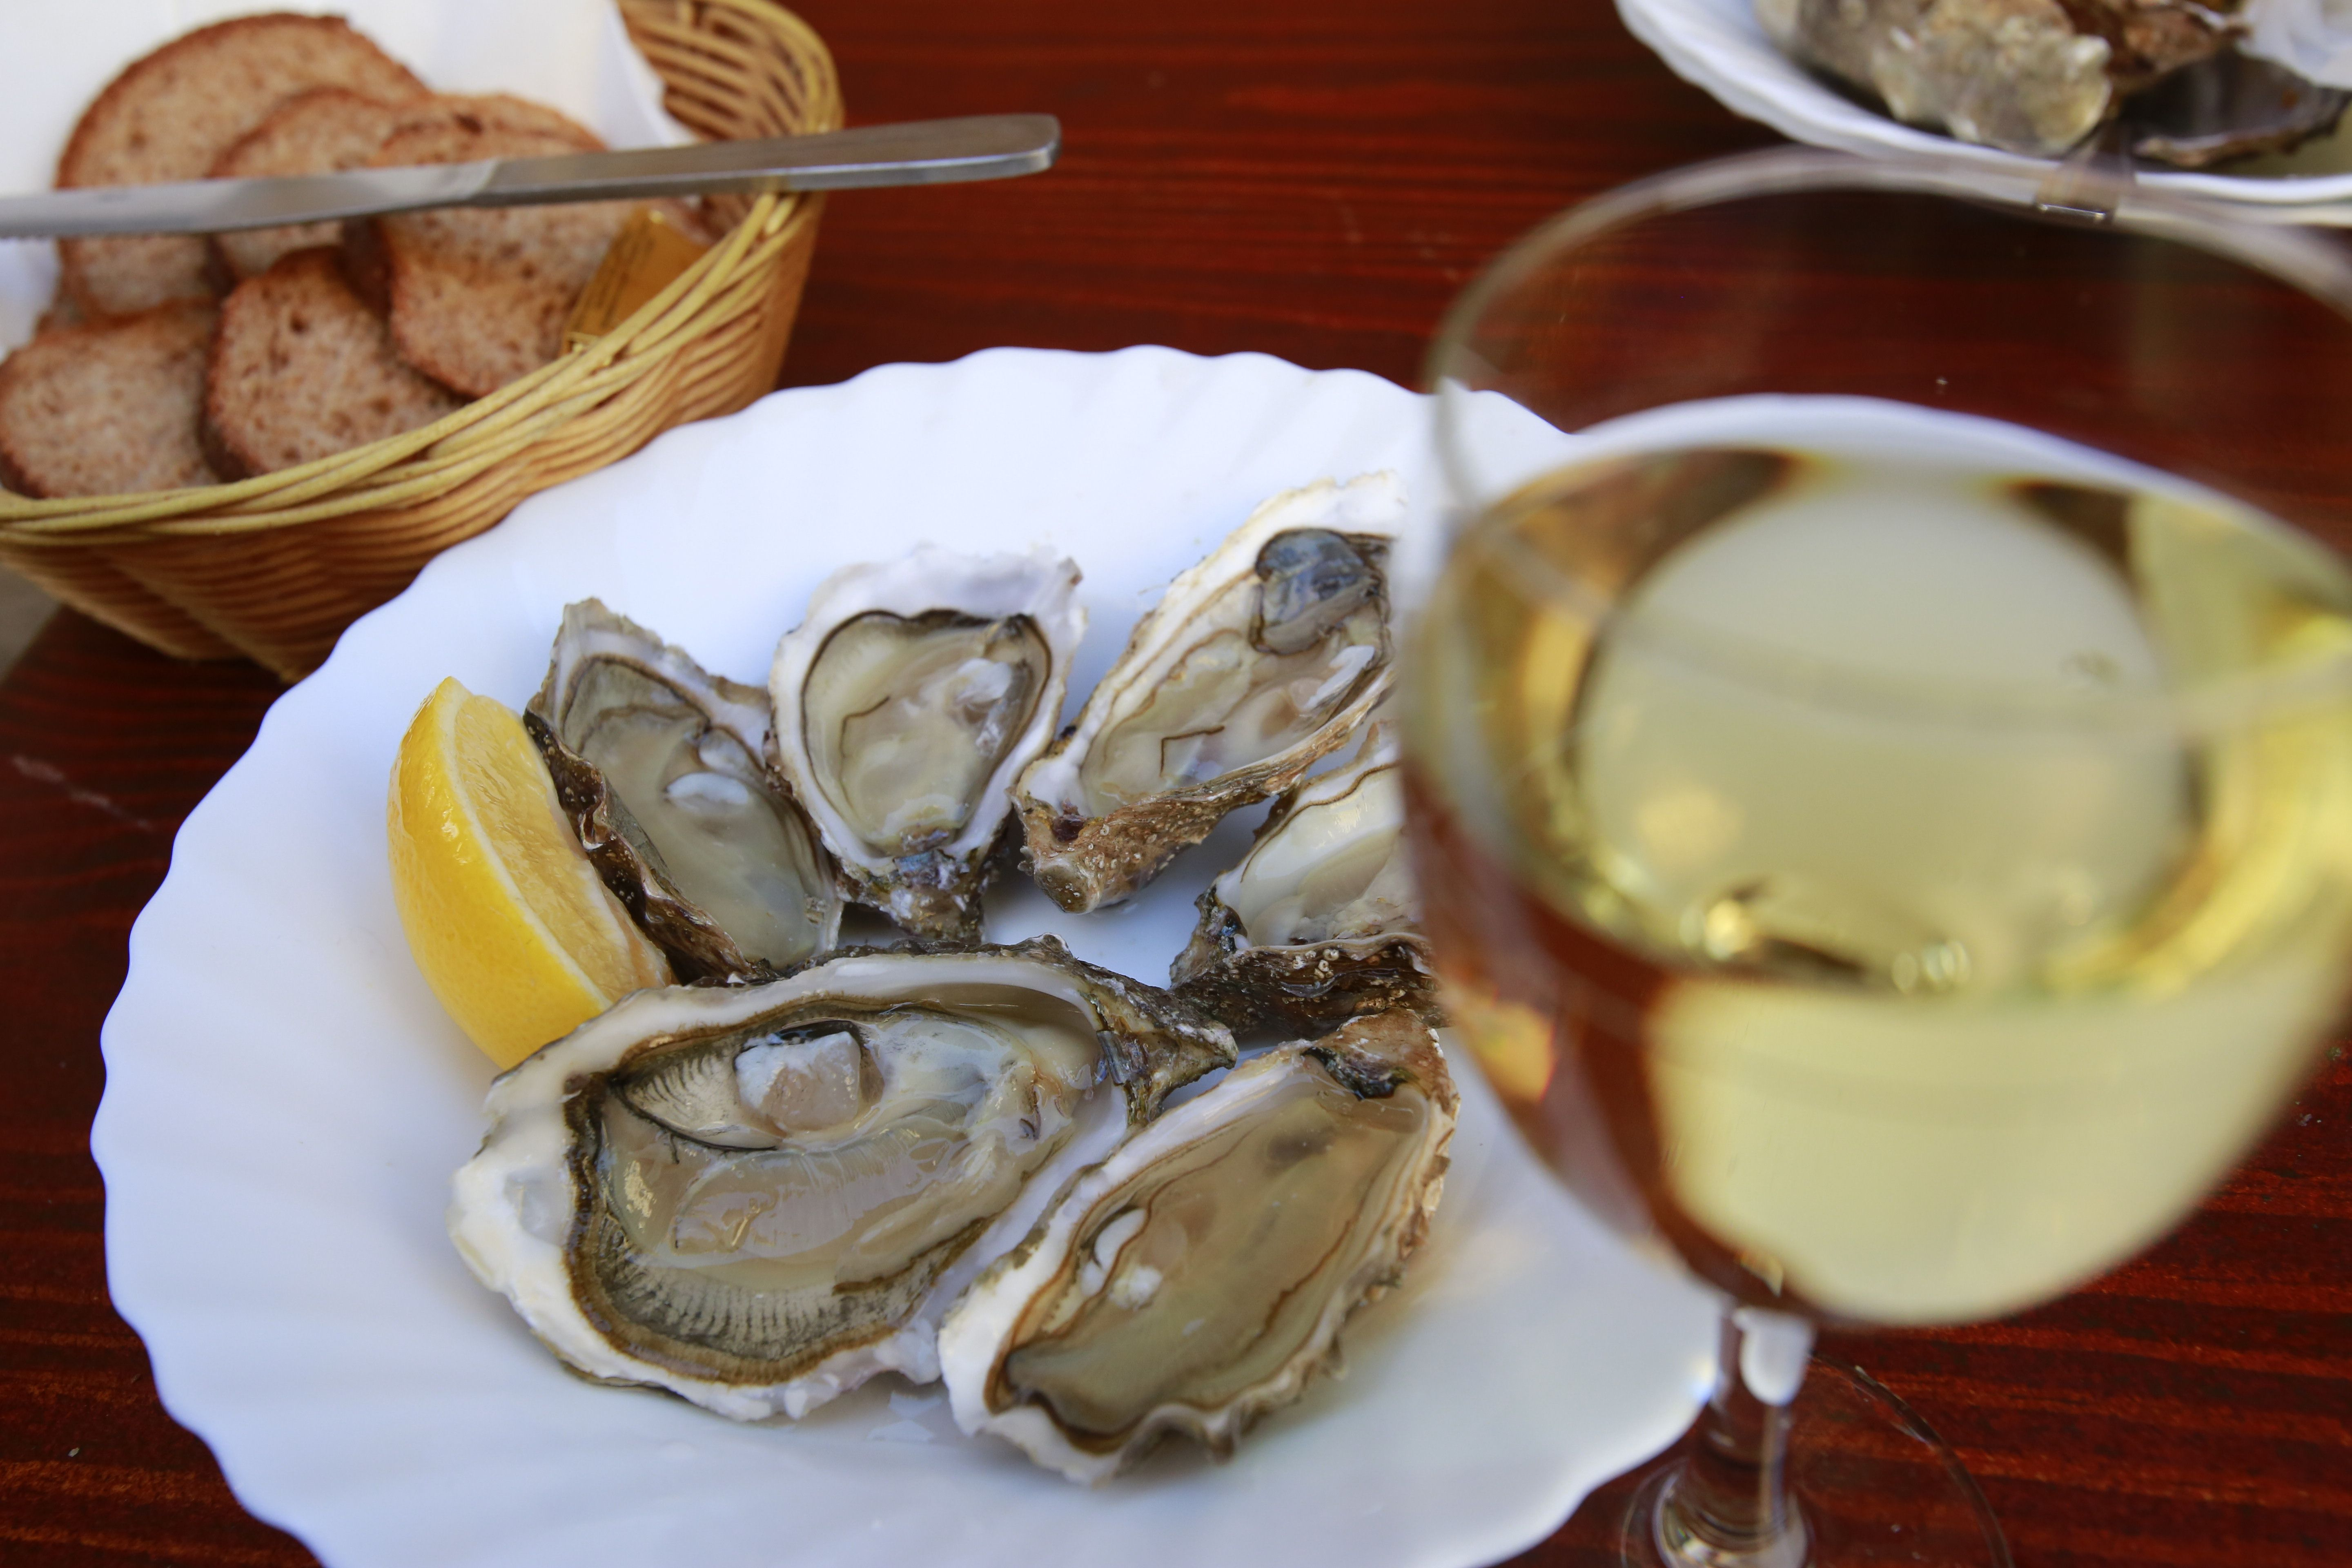 Wine and oysters on the half-shell at Le Baron Rouge, Paris